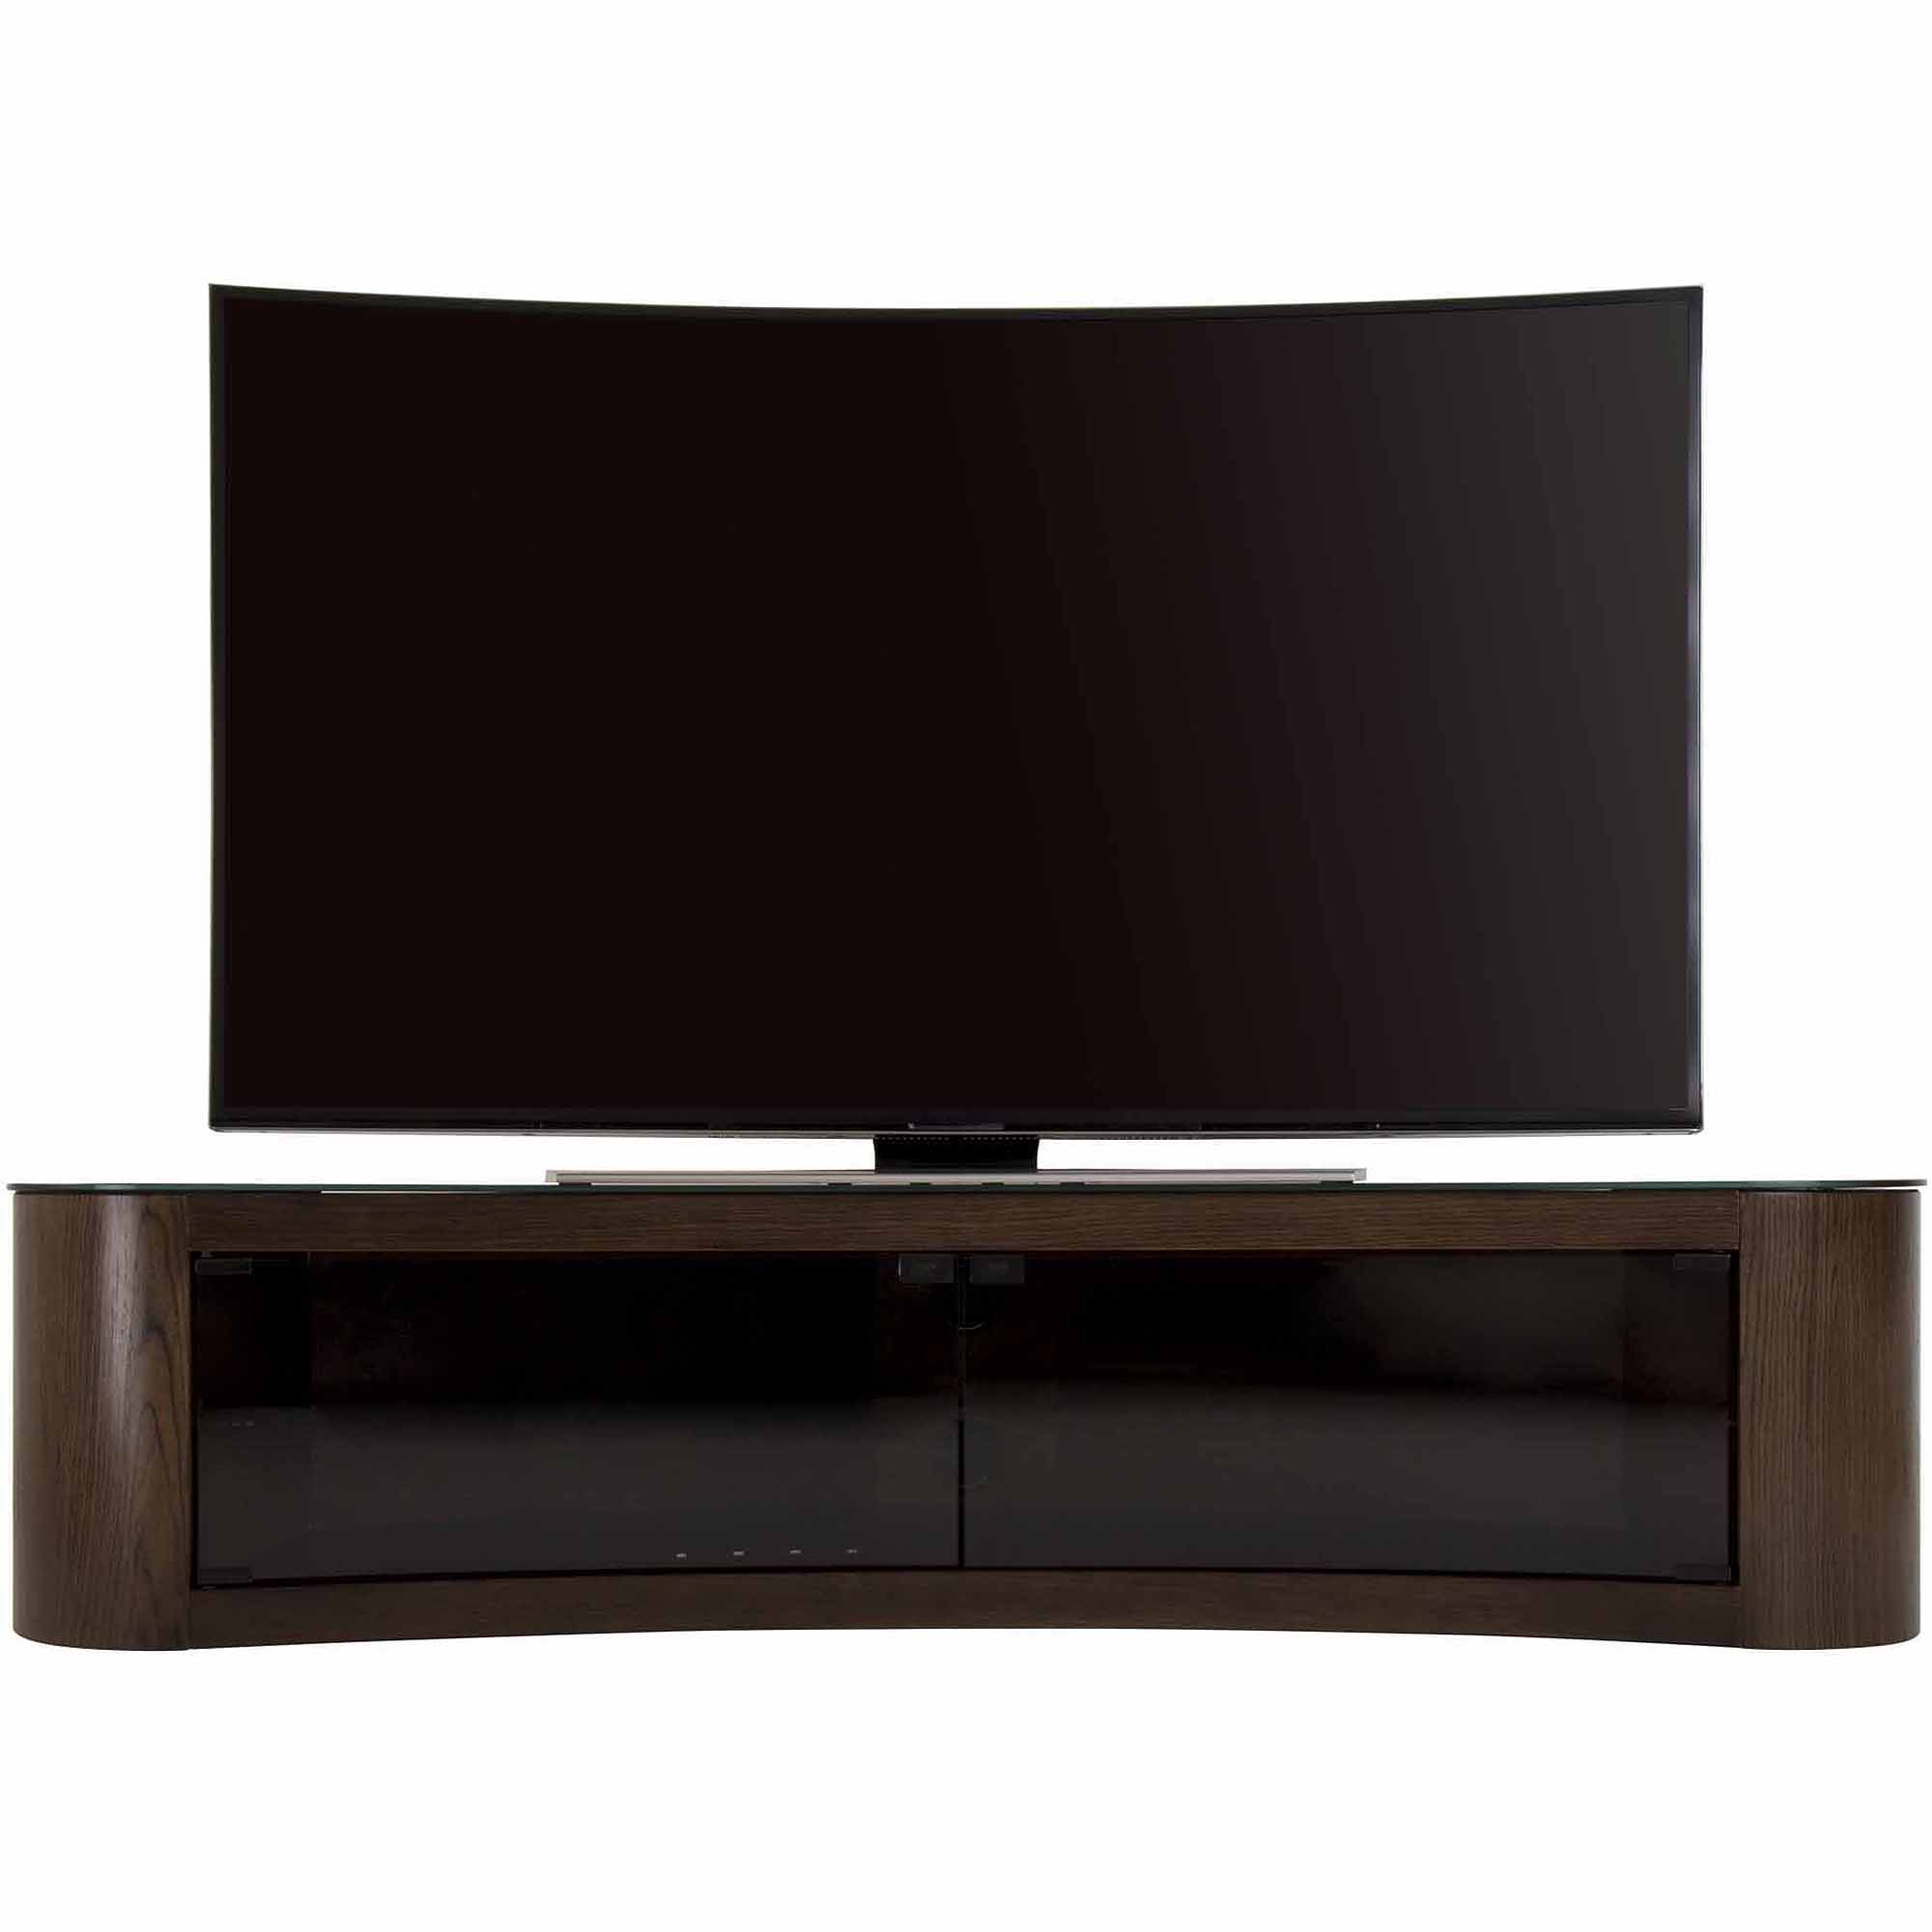 Most Recently Released Tv Stands For 43 Inch Tv Throughout 44 Inch Tv Stand For Sale Near Me Stands Walmart 43 Nvidia Shield (View 2 of 20)